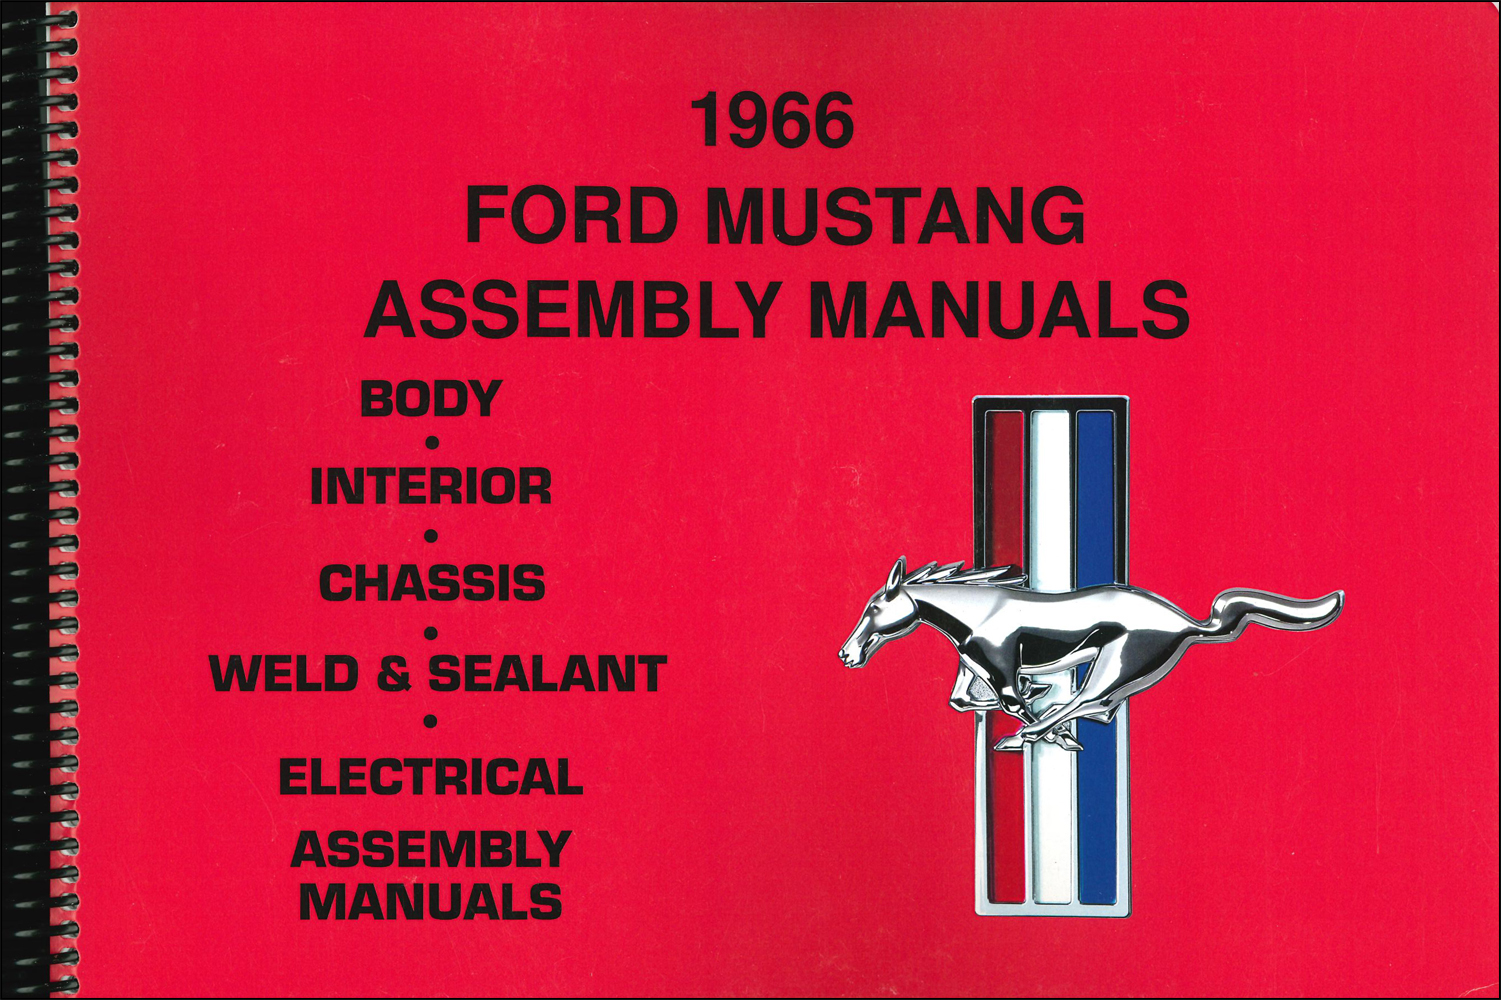 1966 Ford Mustang Wiring Diagram from www.faxonautoliterature.com